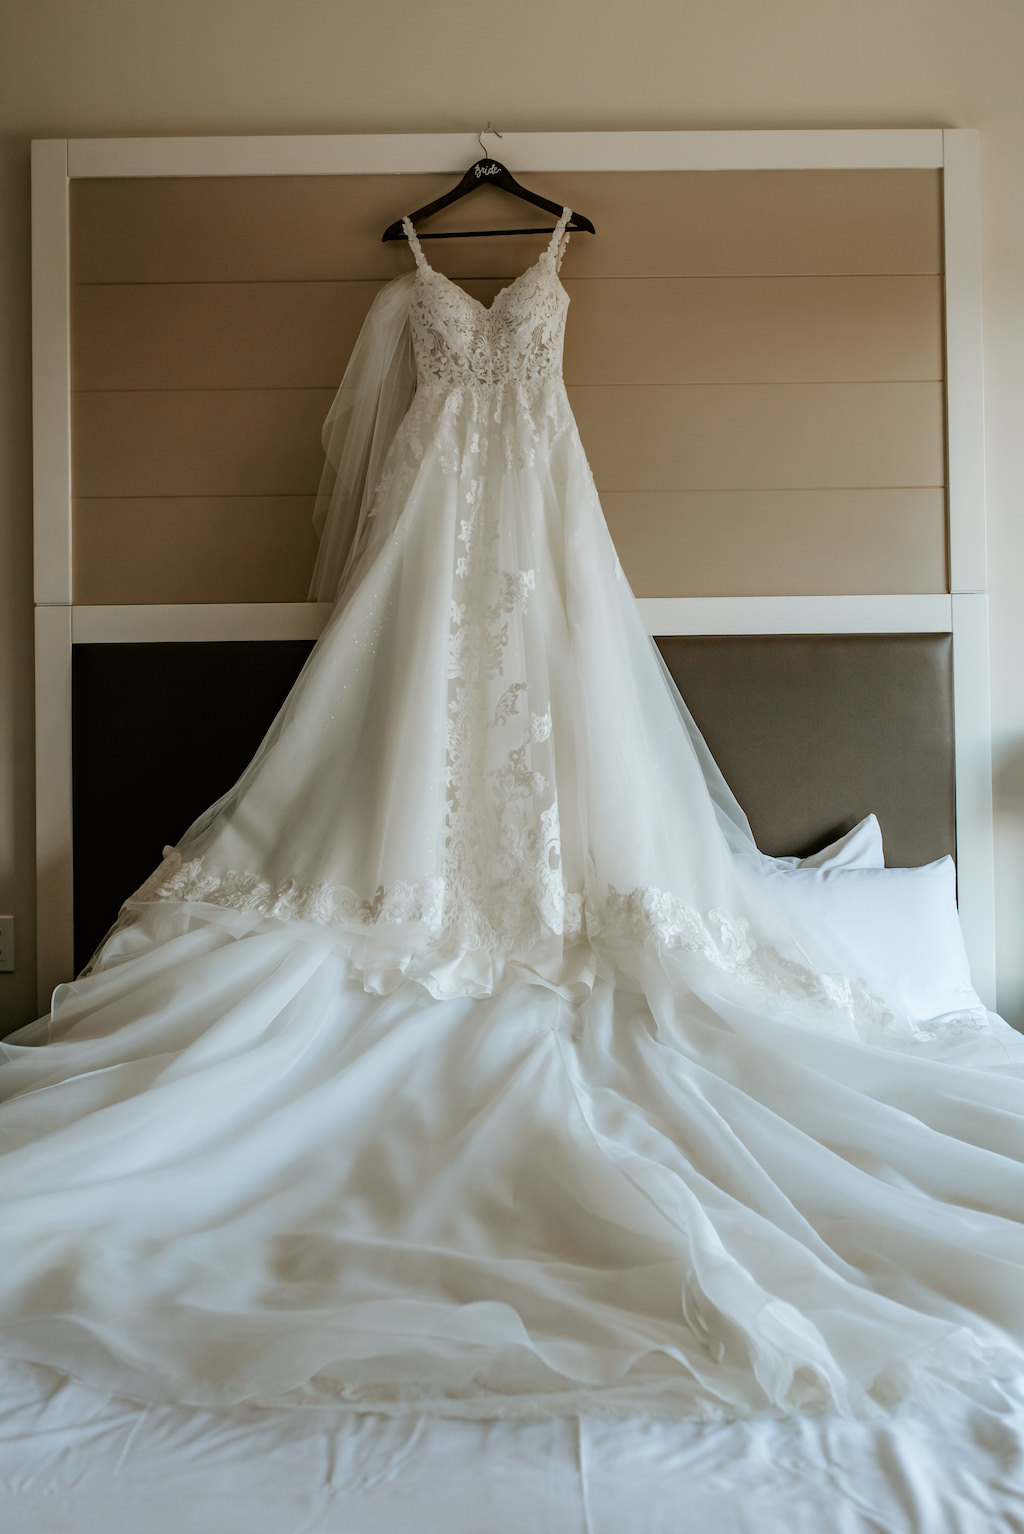 Romantic Bridal Detail, Essense of Australia White Sweetheart Neckline and Straps Ballgown Wedding Dress with Lace Detailing, Cathedral Length Train